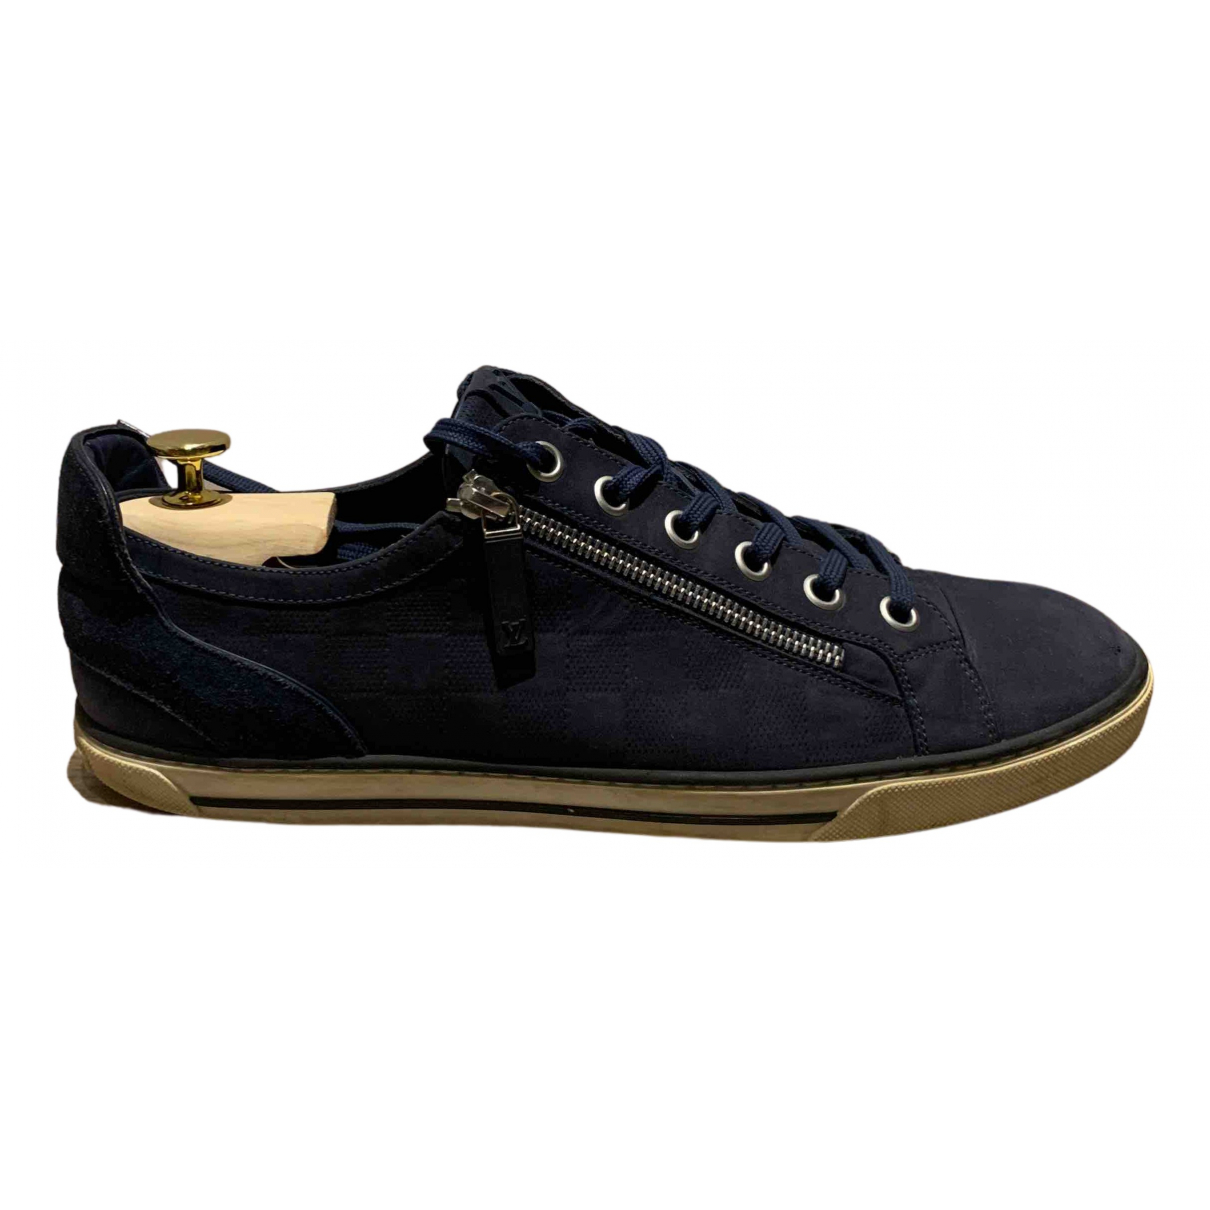 Louis Vuitton N Navy Suede Trainers for Men 9 US